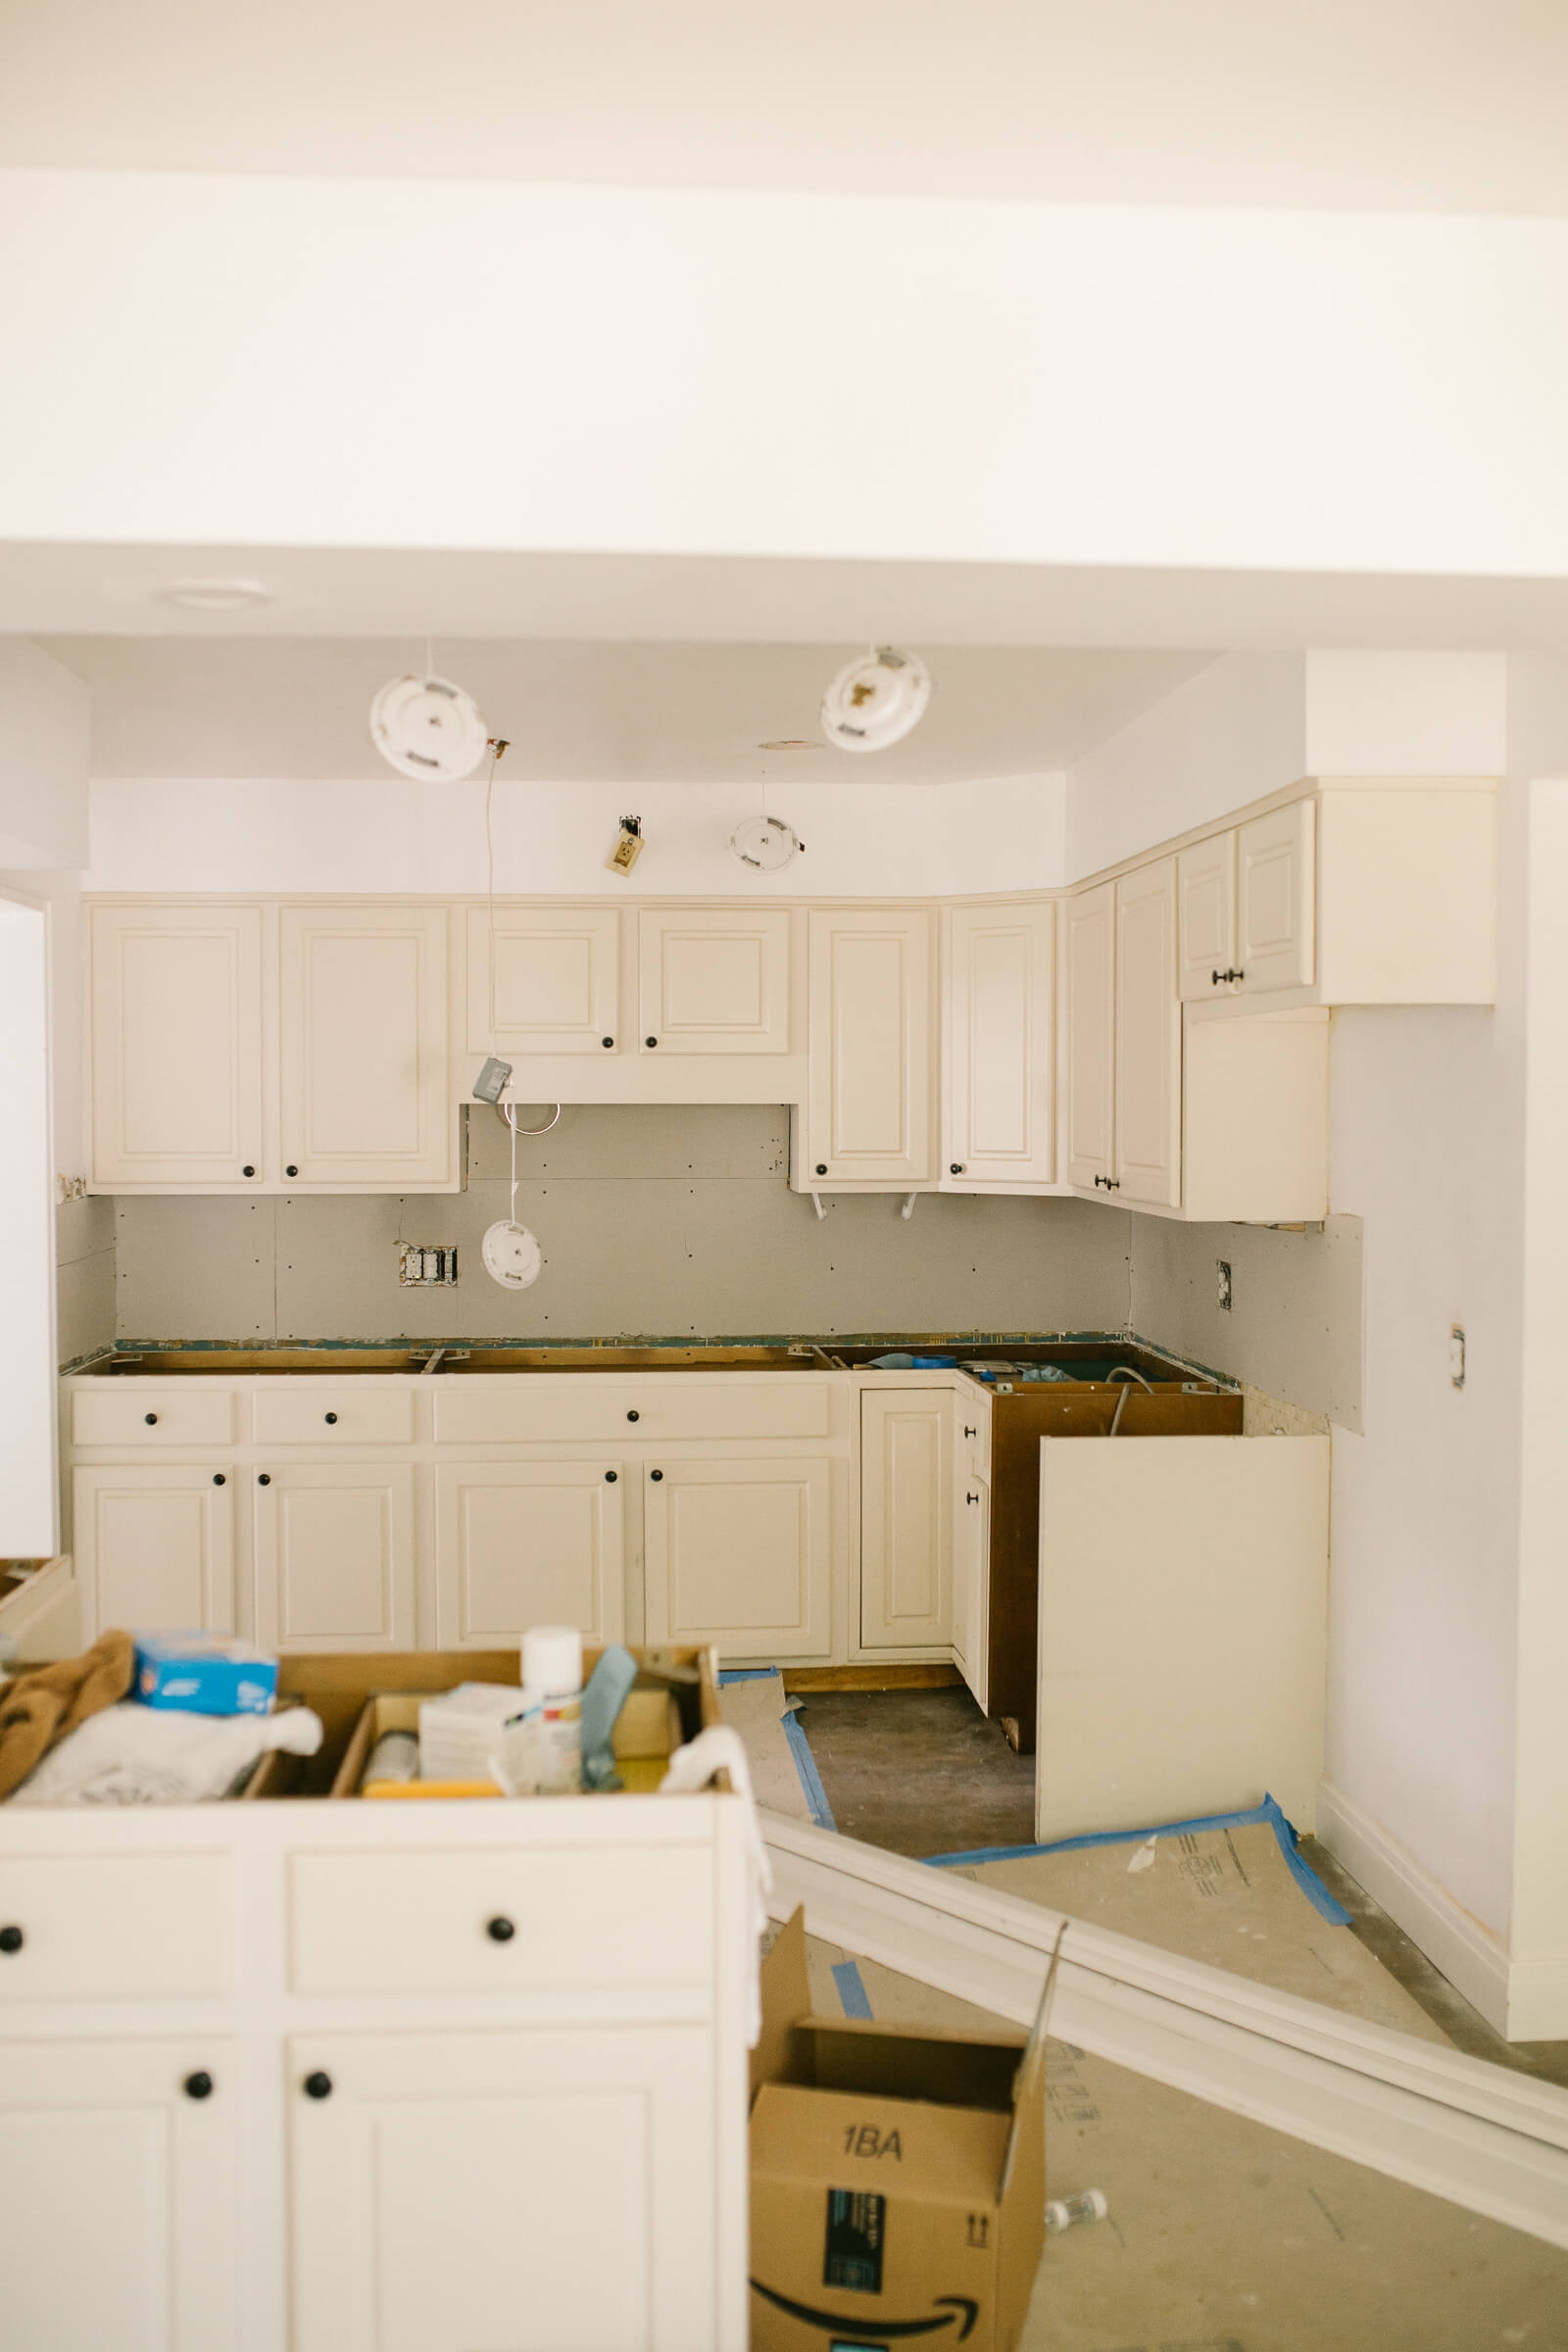 How To Paint Laminate Cabinets Tips And Tricks For The Best Finish Conley Adventures